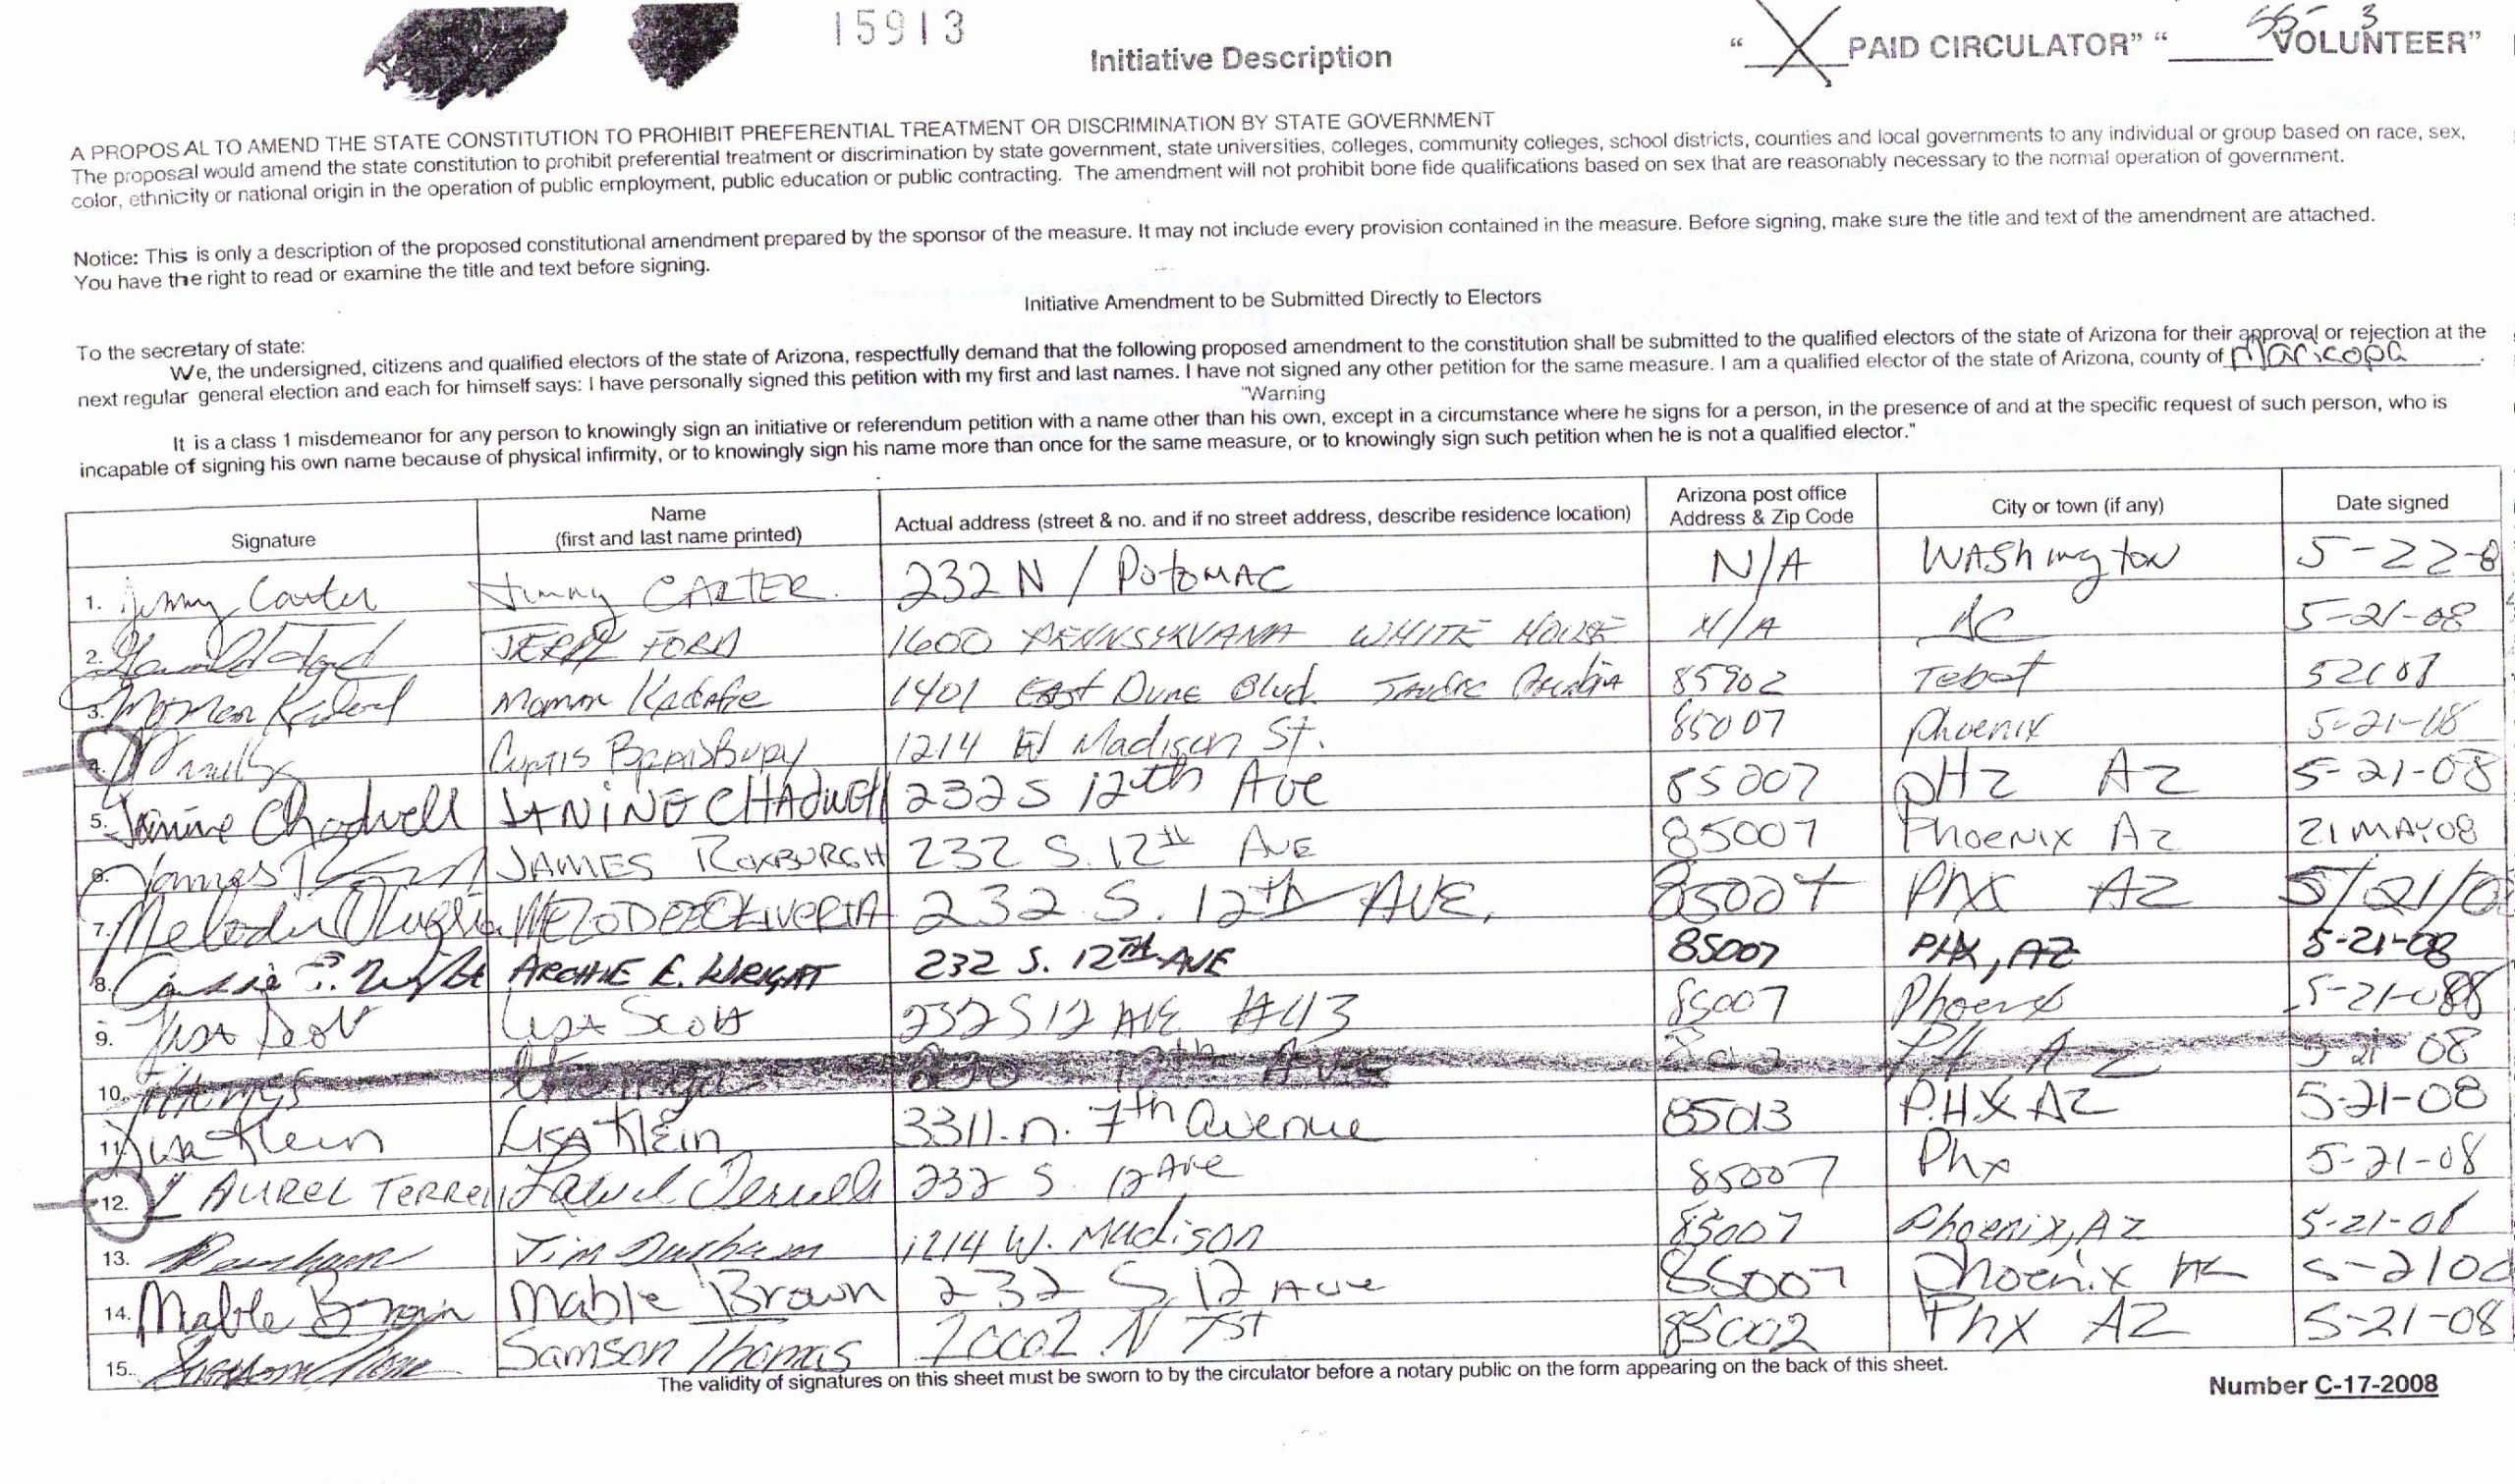 Aa Sign In Sheet with Signatures Unique Affirmative Action Ban Likely to Be Stripped From Arizona